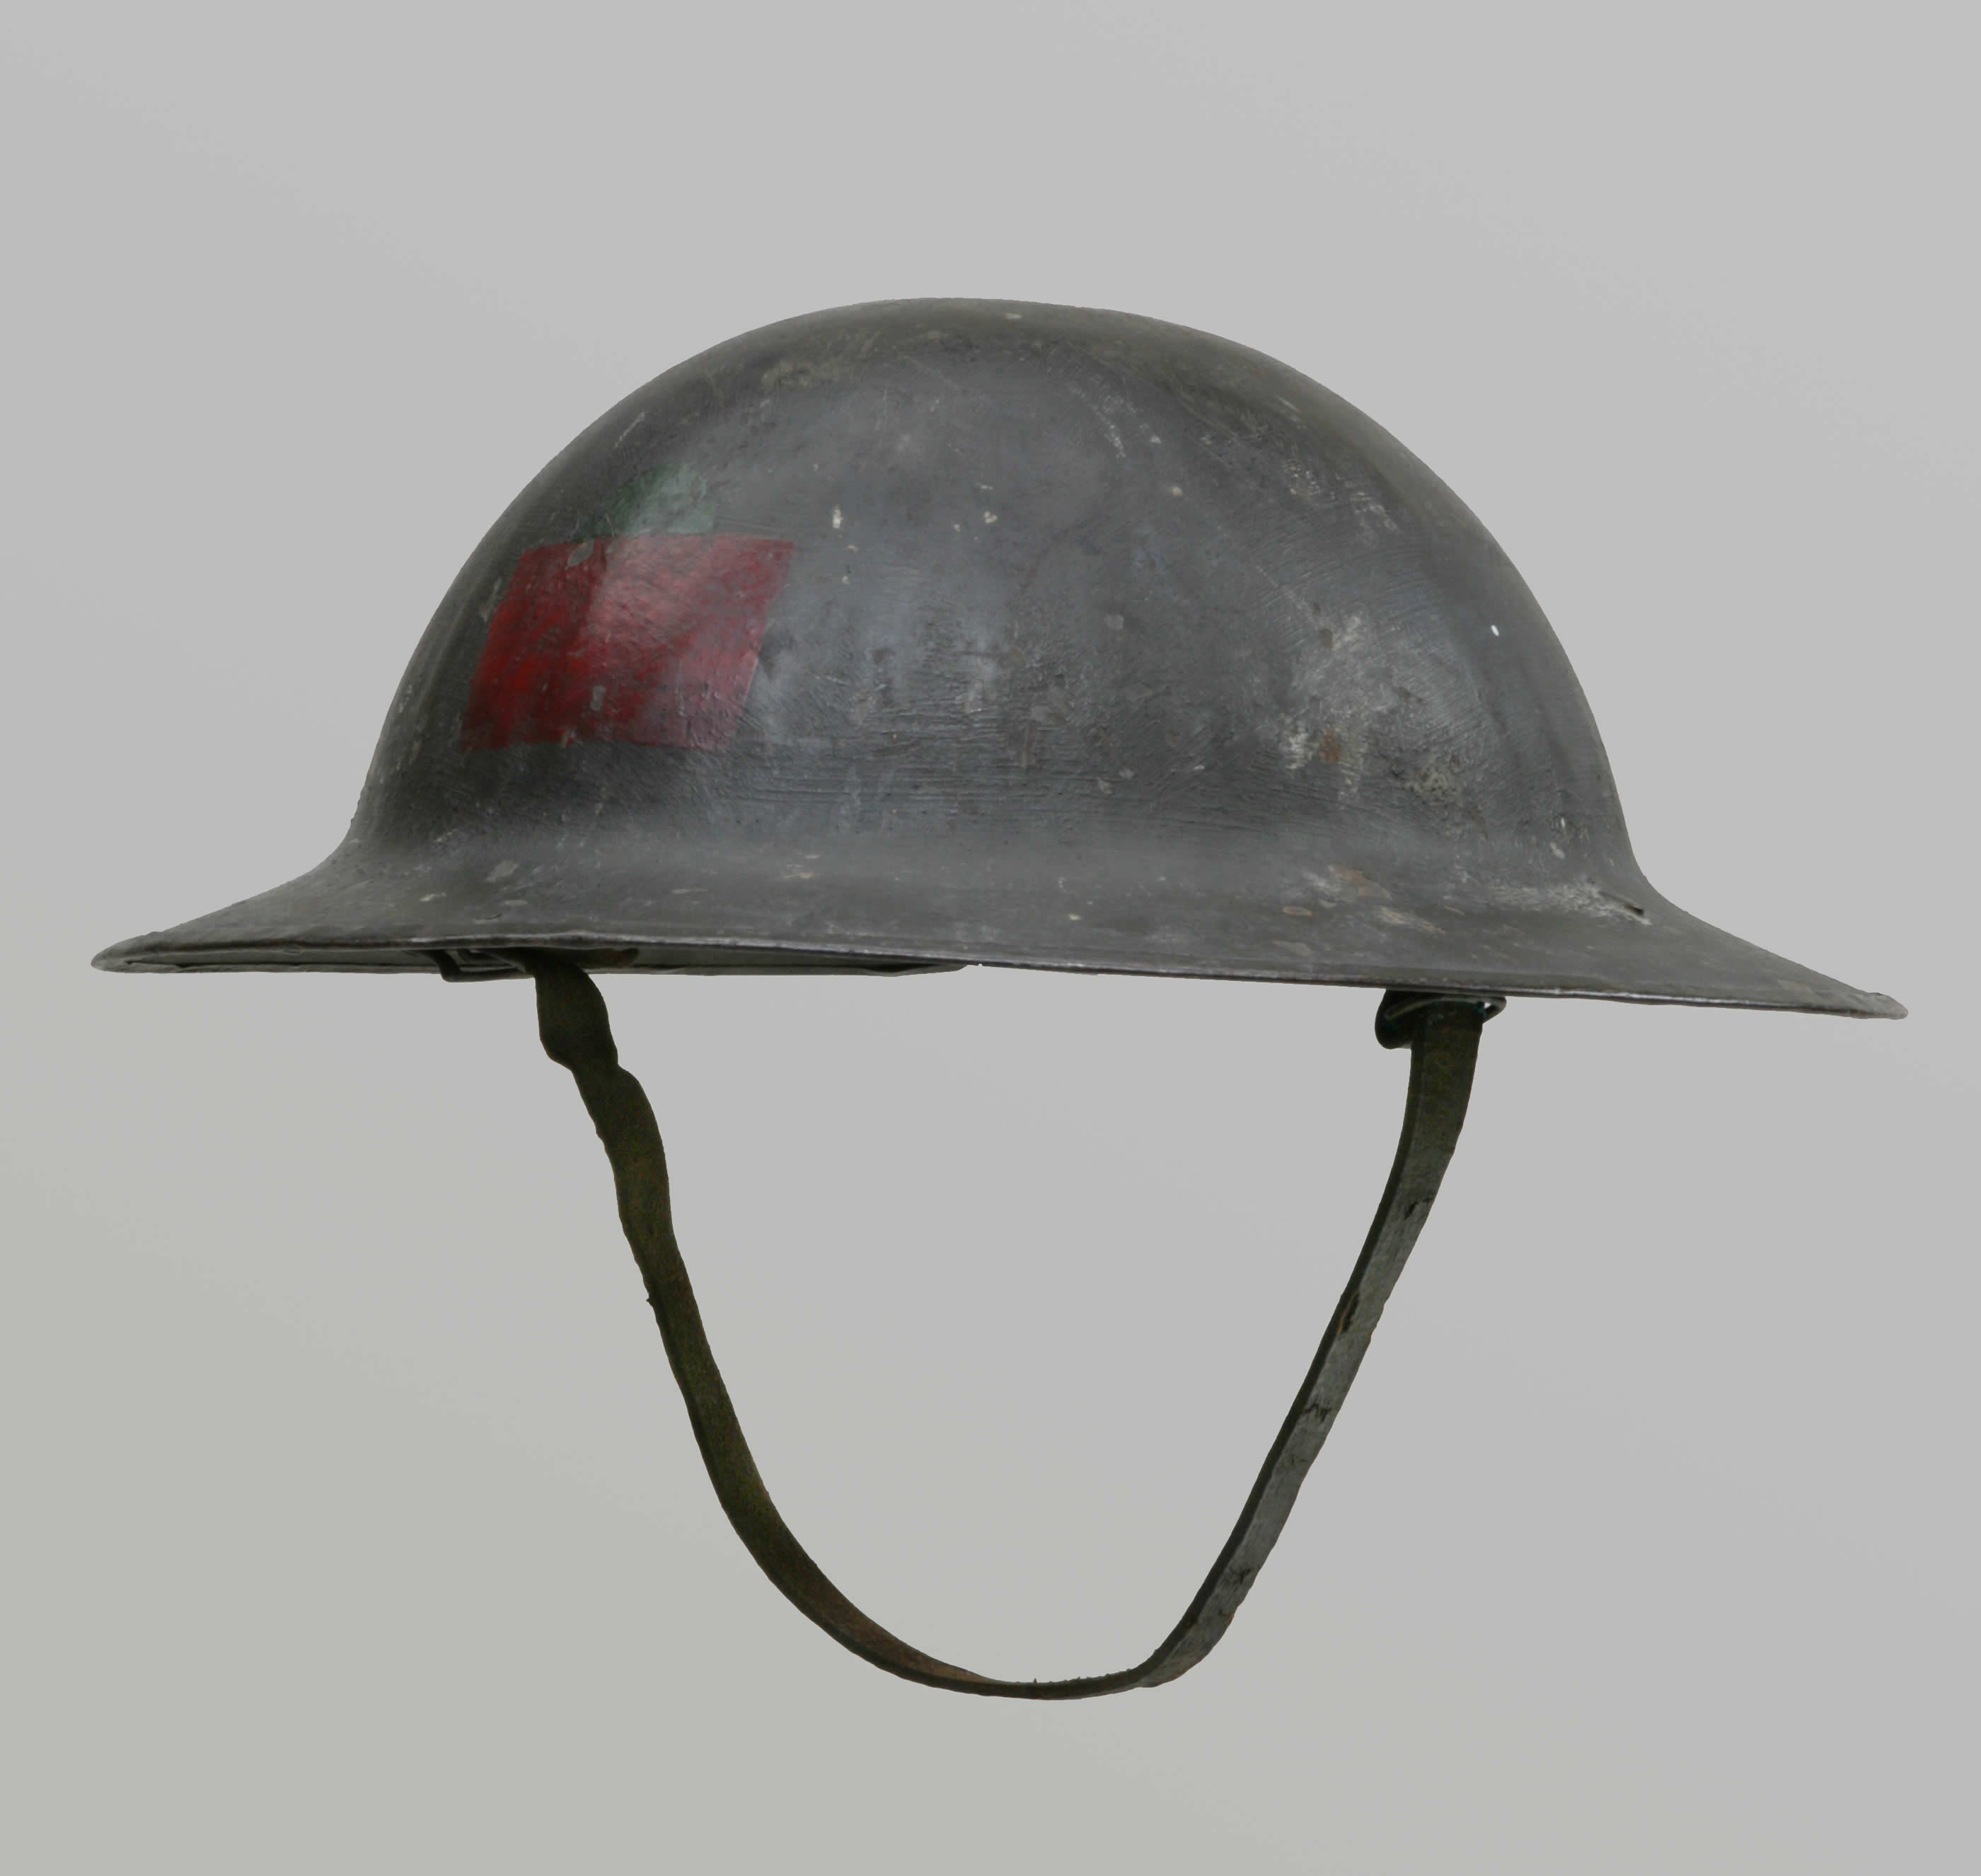 Its Not Personal >> Uniforms and Personal Gear - Helmet | Canada and the First World War